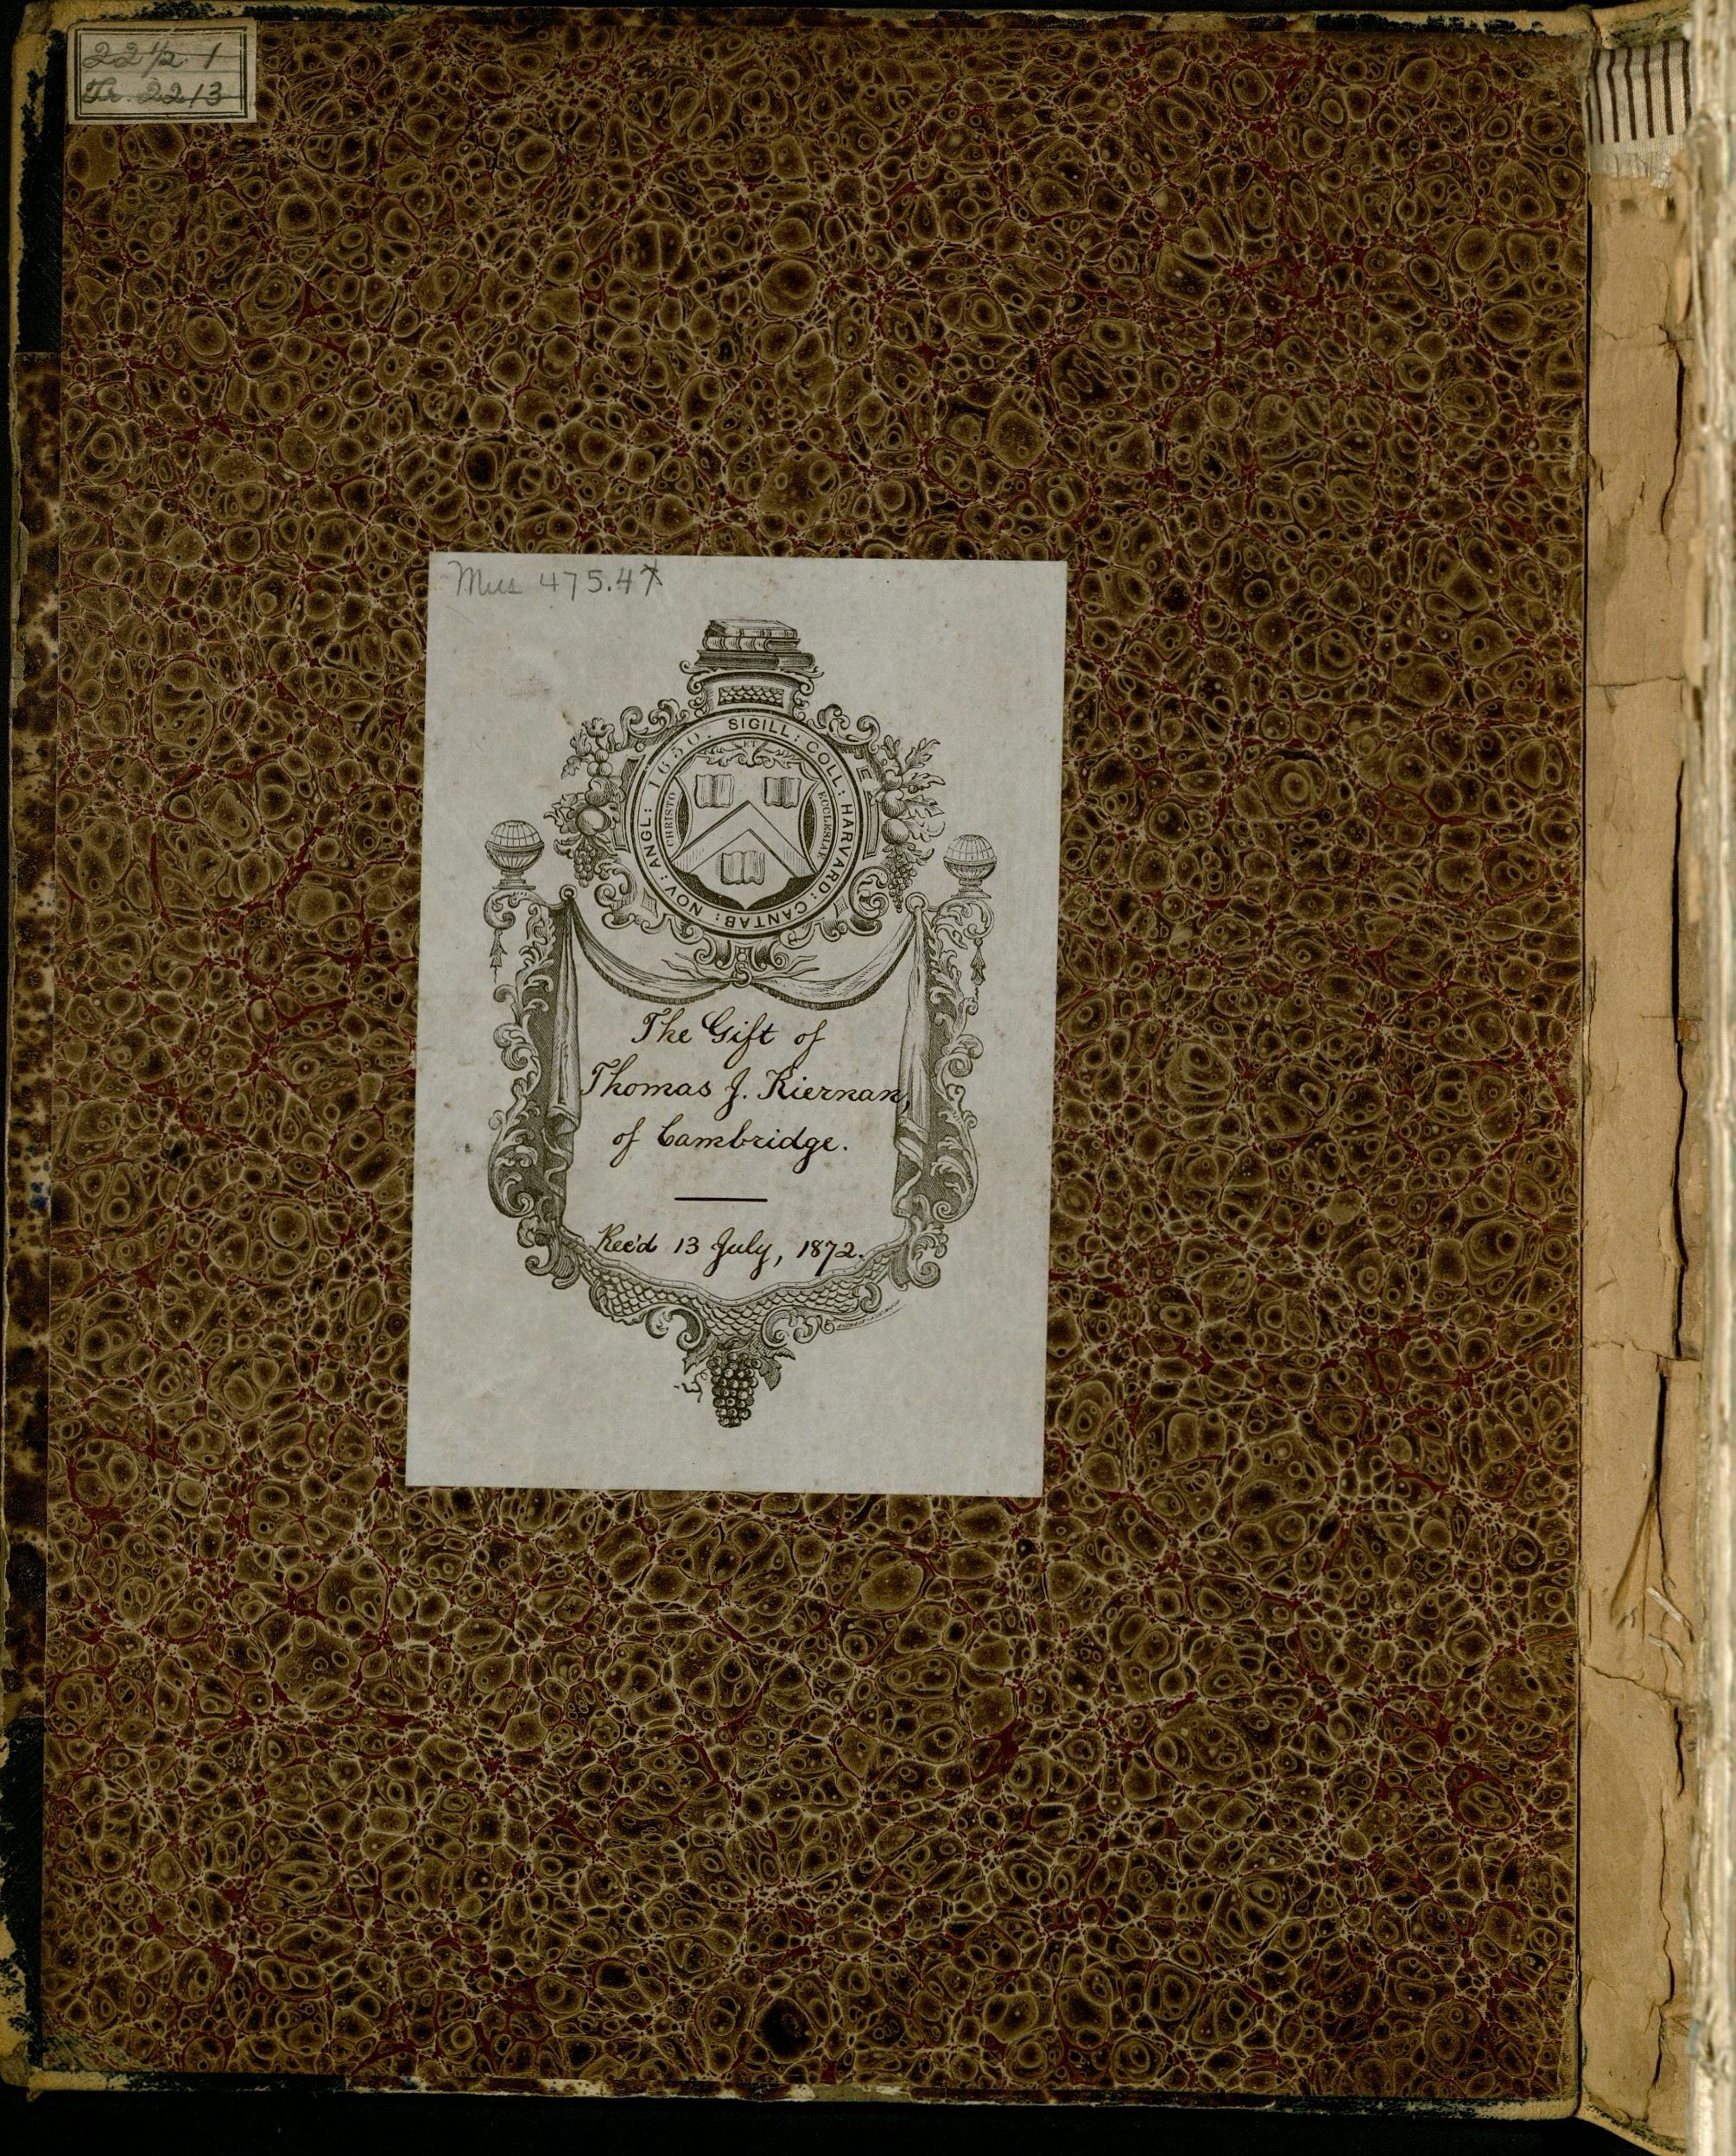 Inside front cover of the Thomas J. Kiernan volume of American vocal music, circa 1843-1871 (Tawa 8)